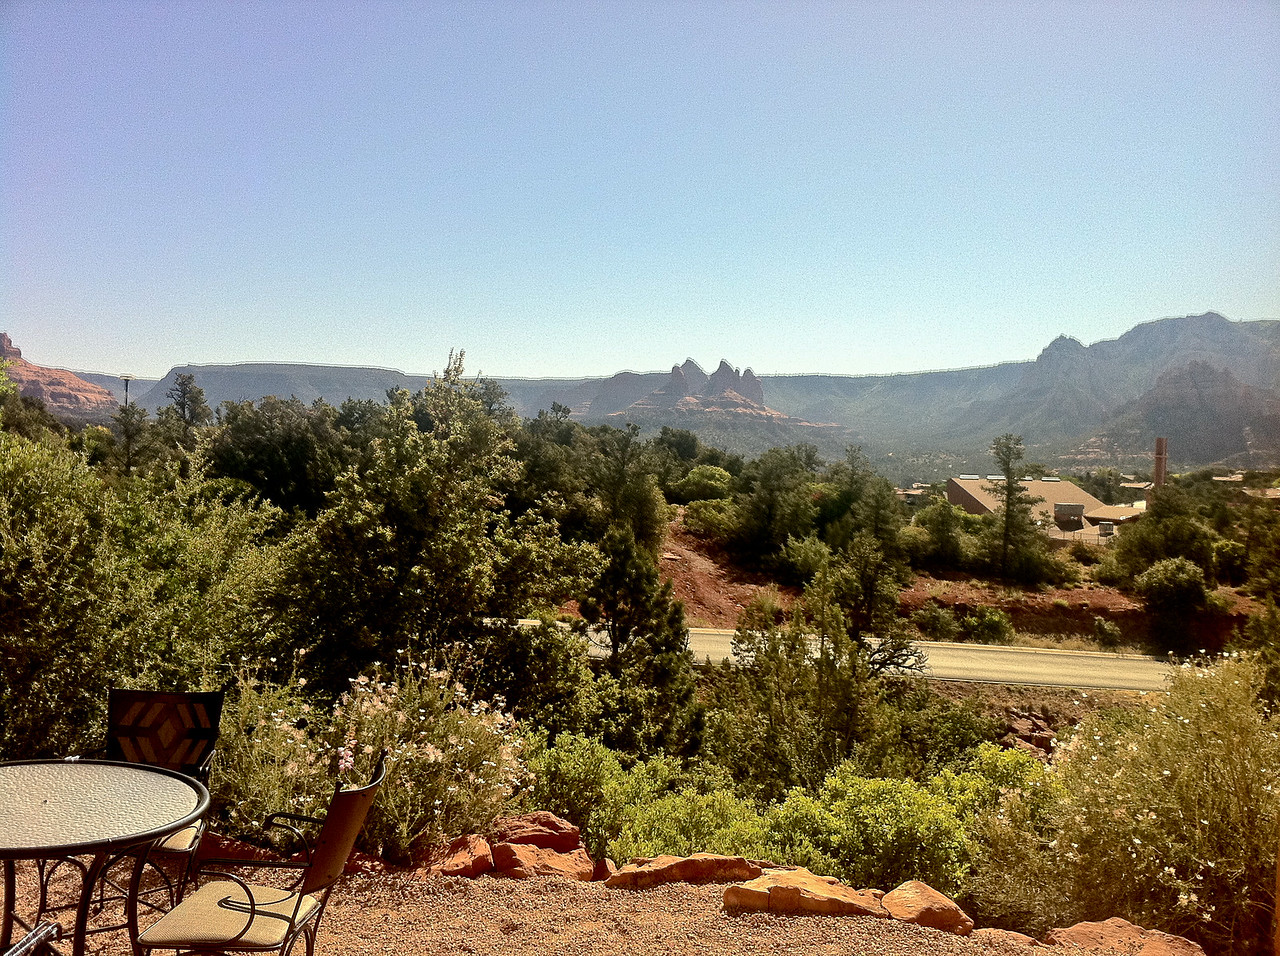 Nice View - The view from our hotel in Sedona, AZ